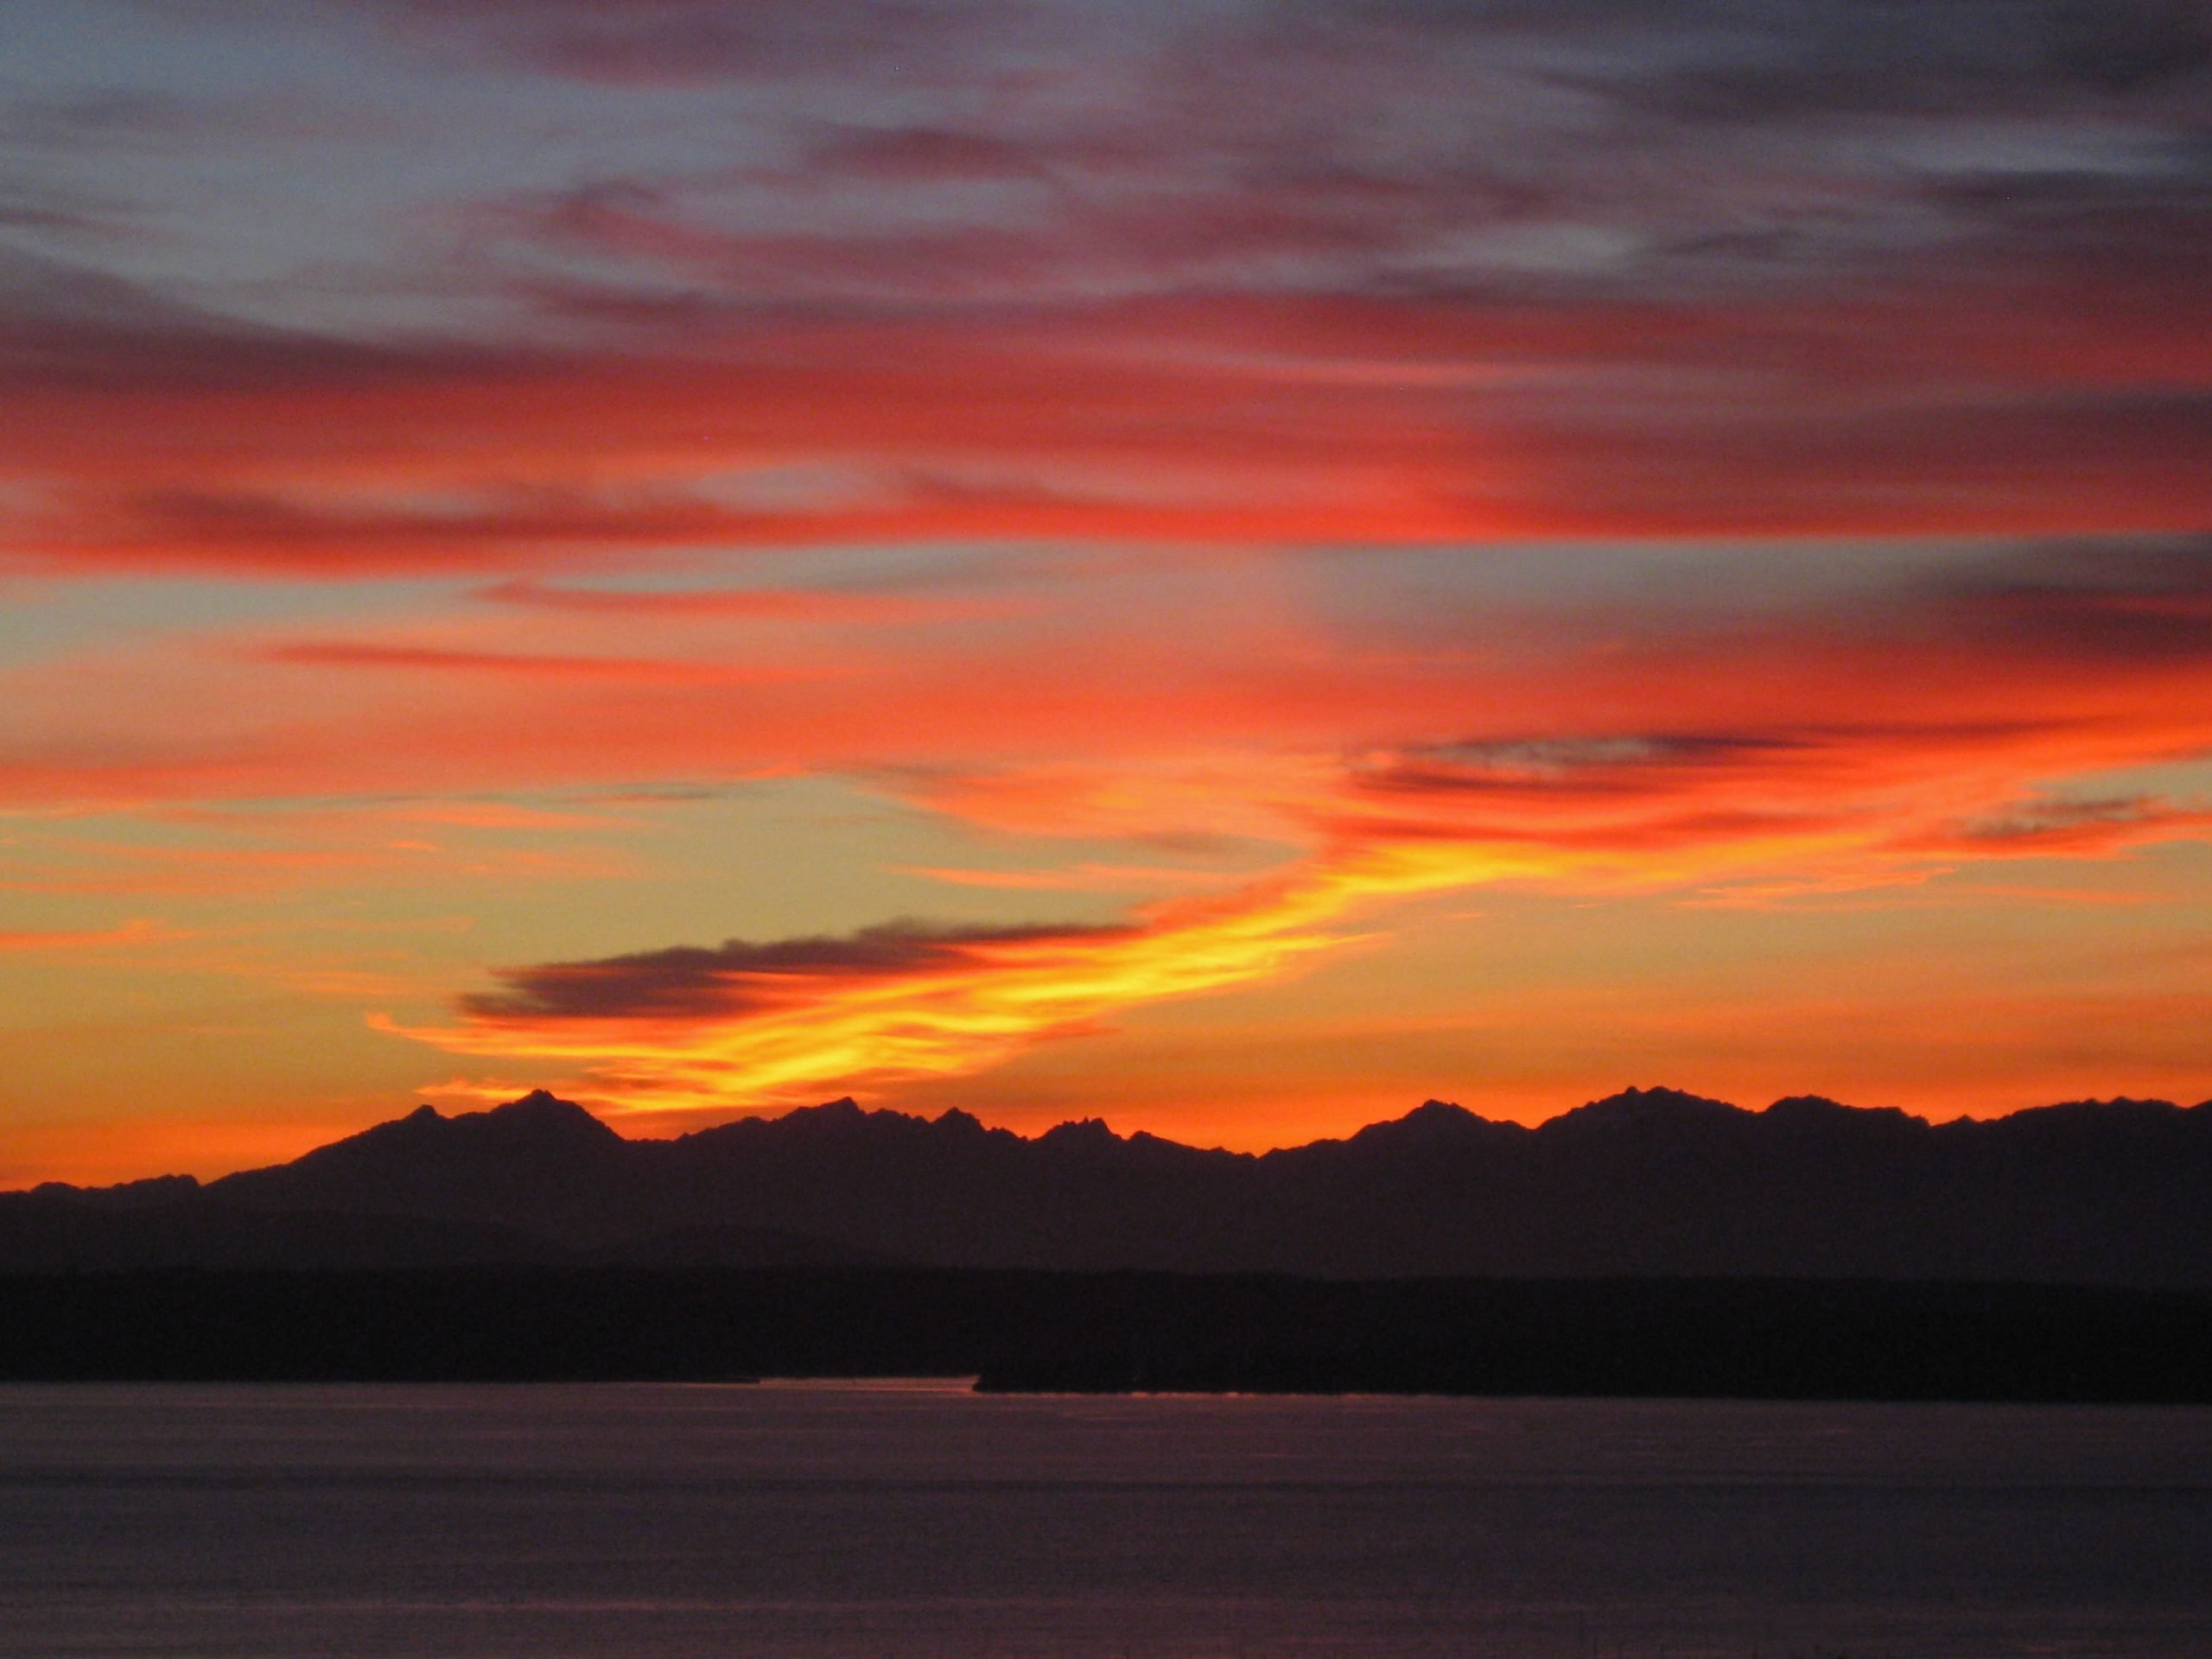 Seattle sunset, October 5, 2013 (Photo: Helen Holter)